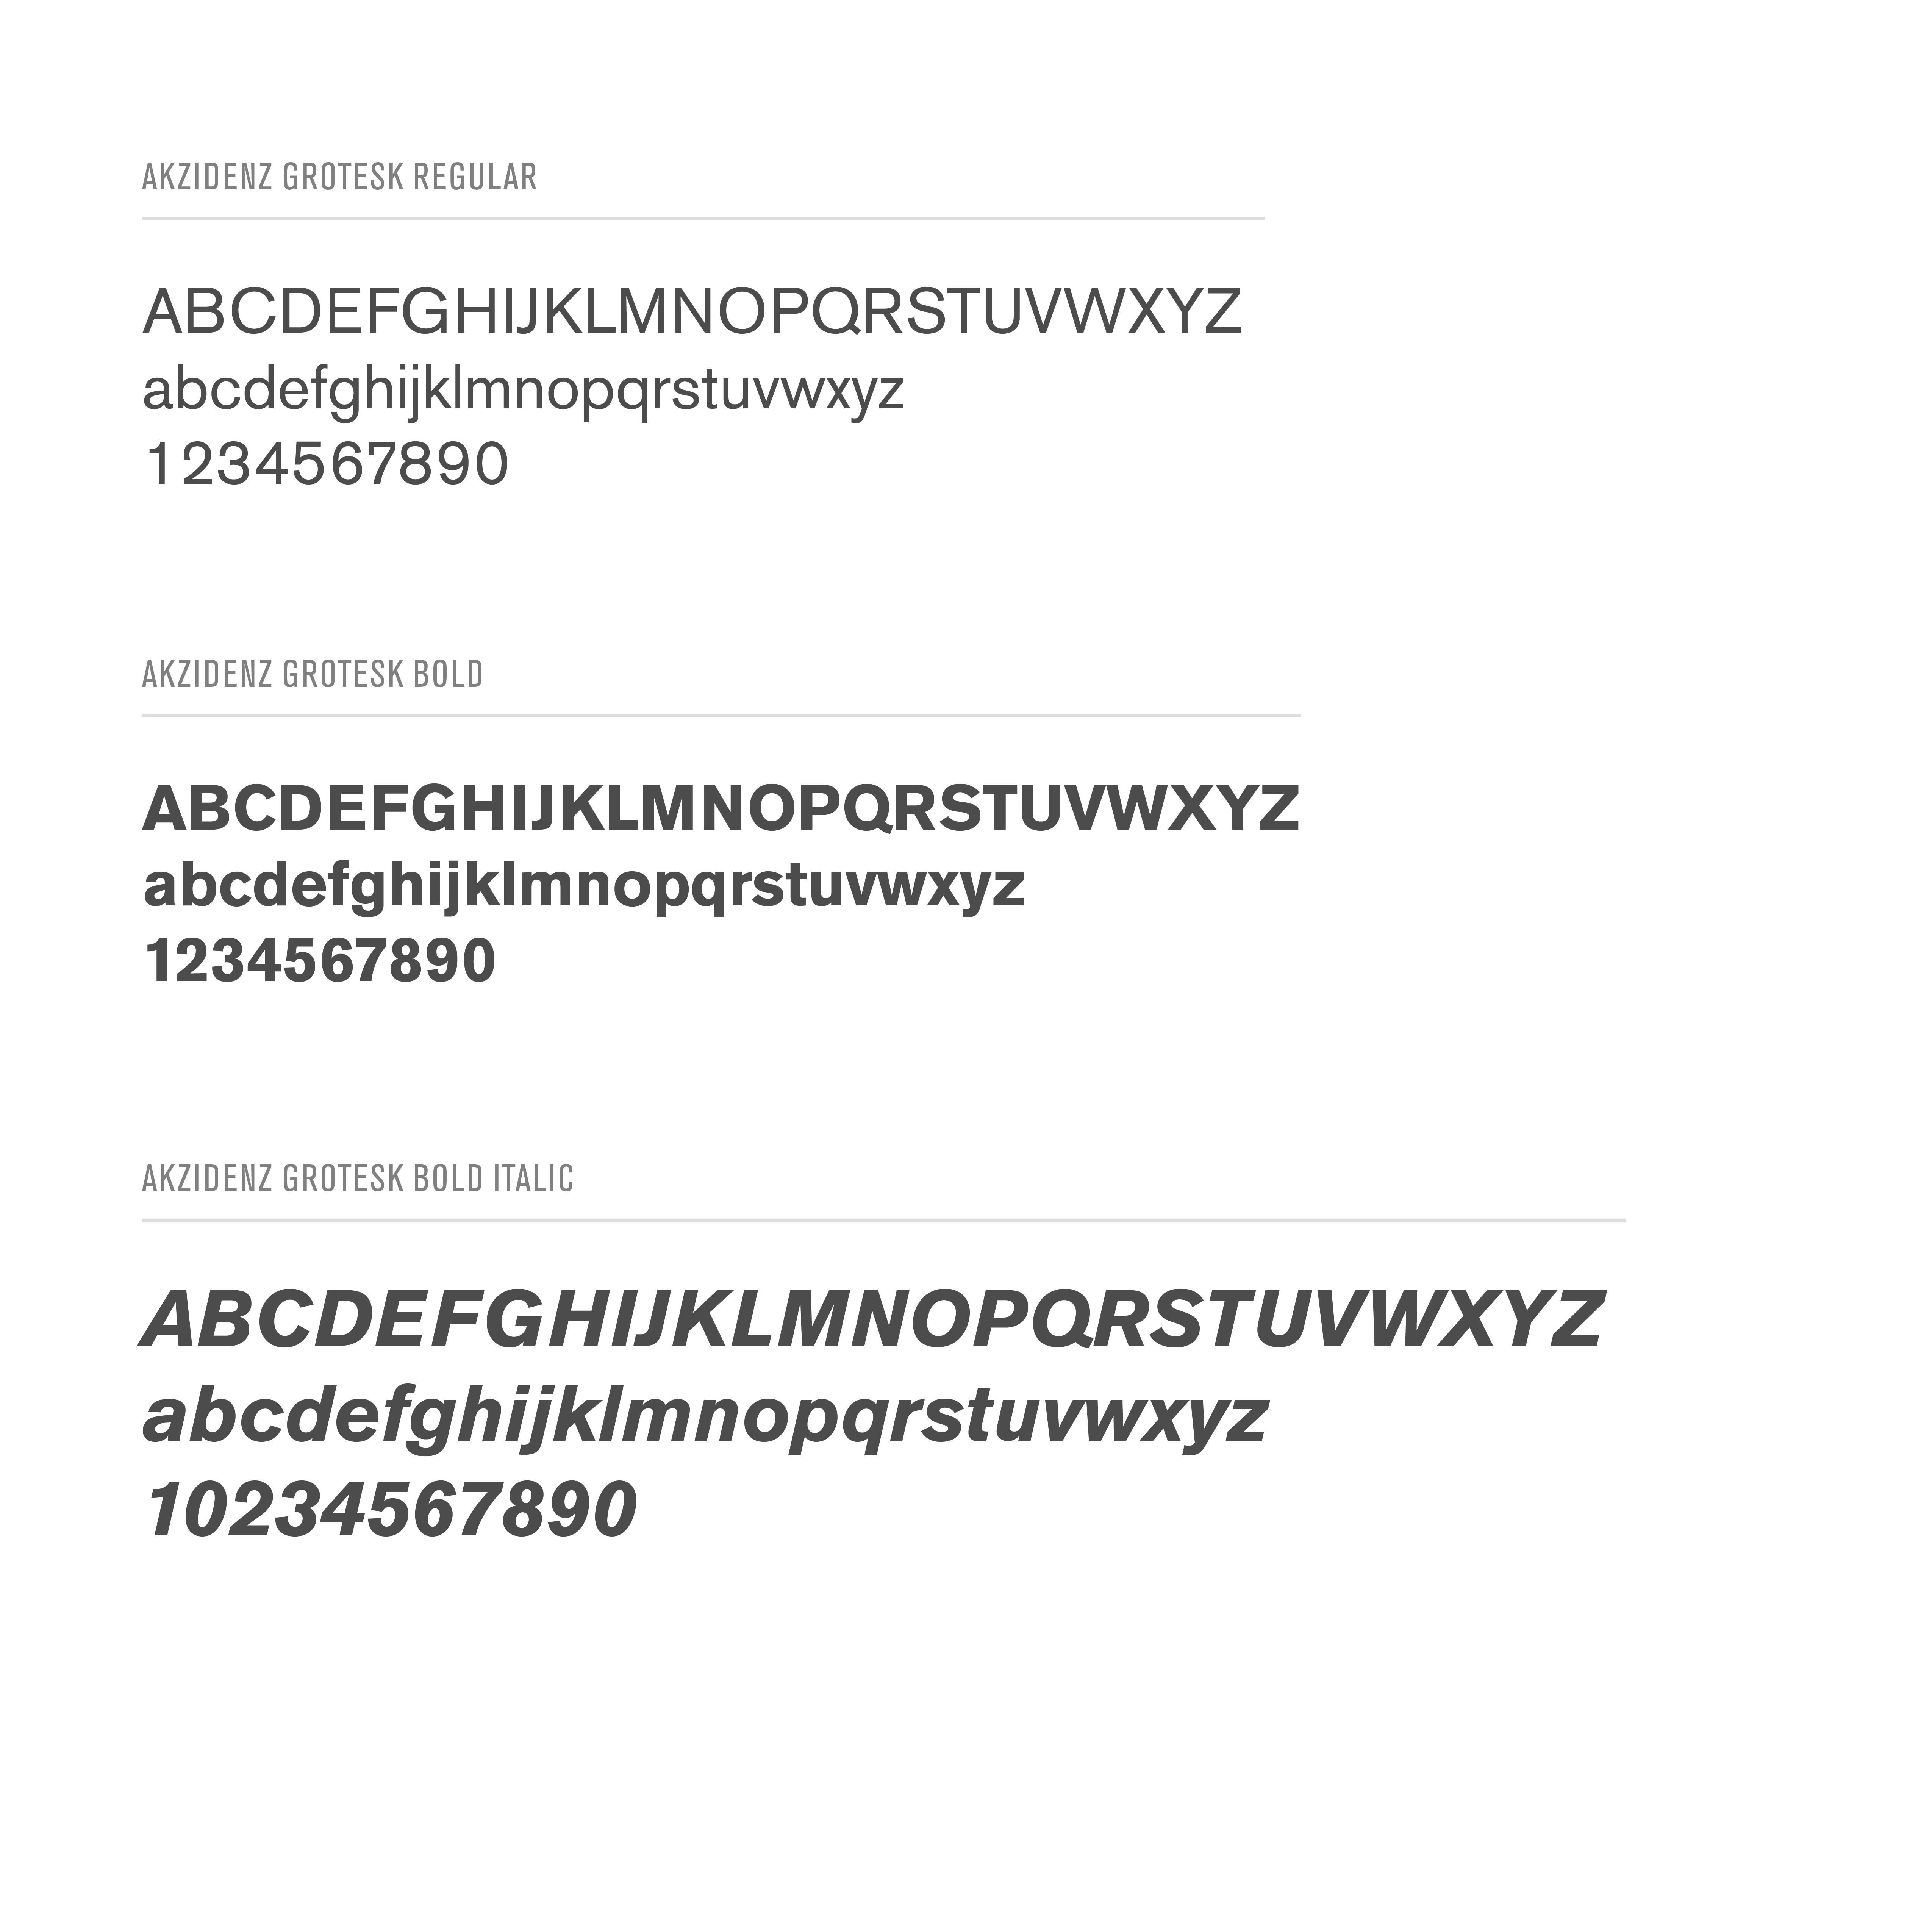 Preview of text in Akzidenz font.